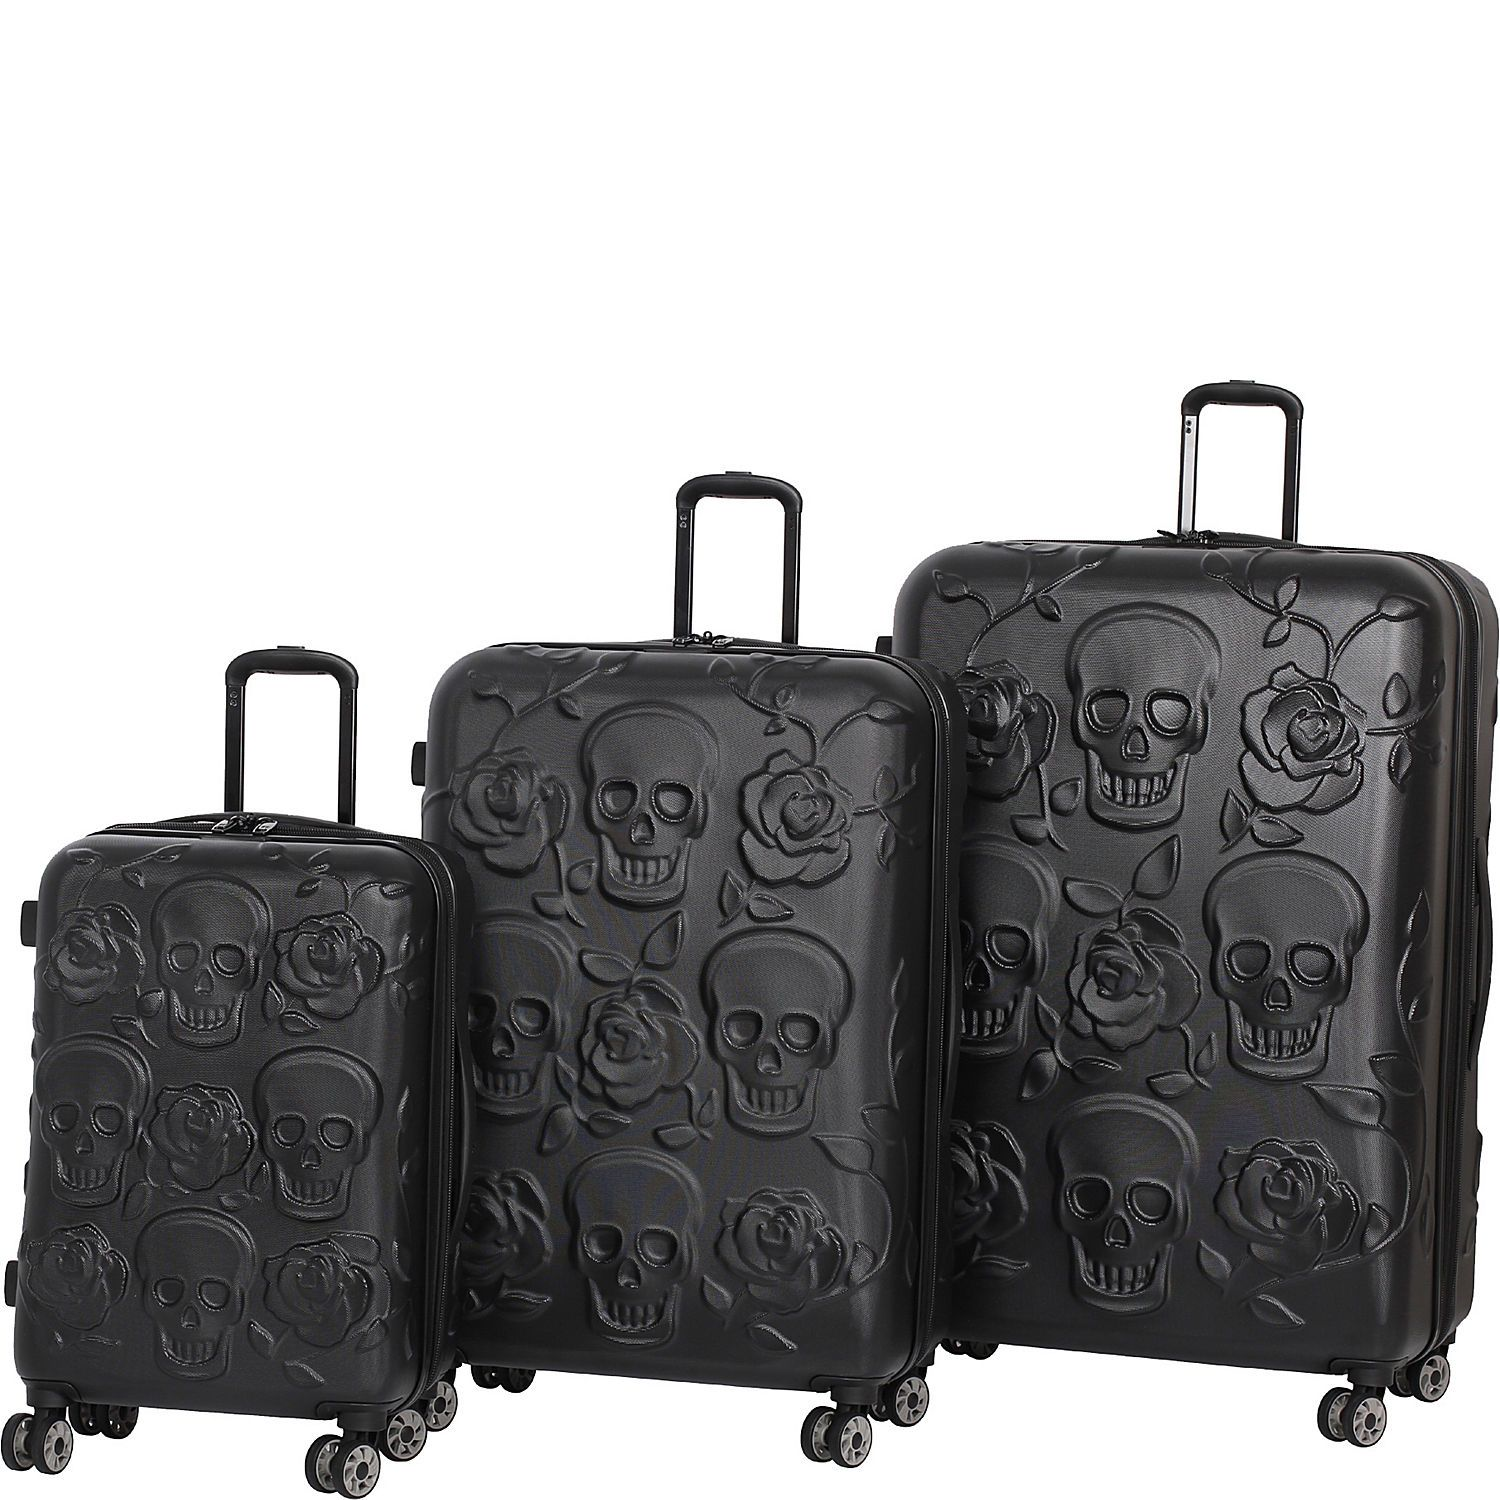 8fd49f9ad5d3 Buy the IT Luggage Skull Emboss 3 Piece Spinner Luggage Set at eBags -  Travel in style with this unique 3 piece set from it luggage!